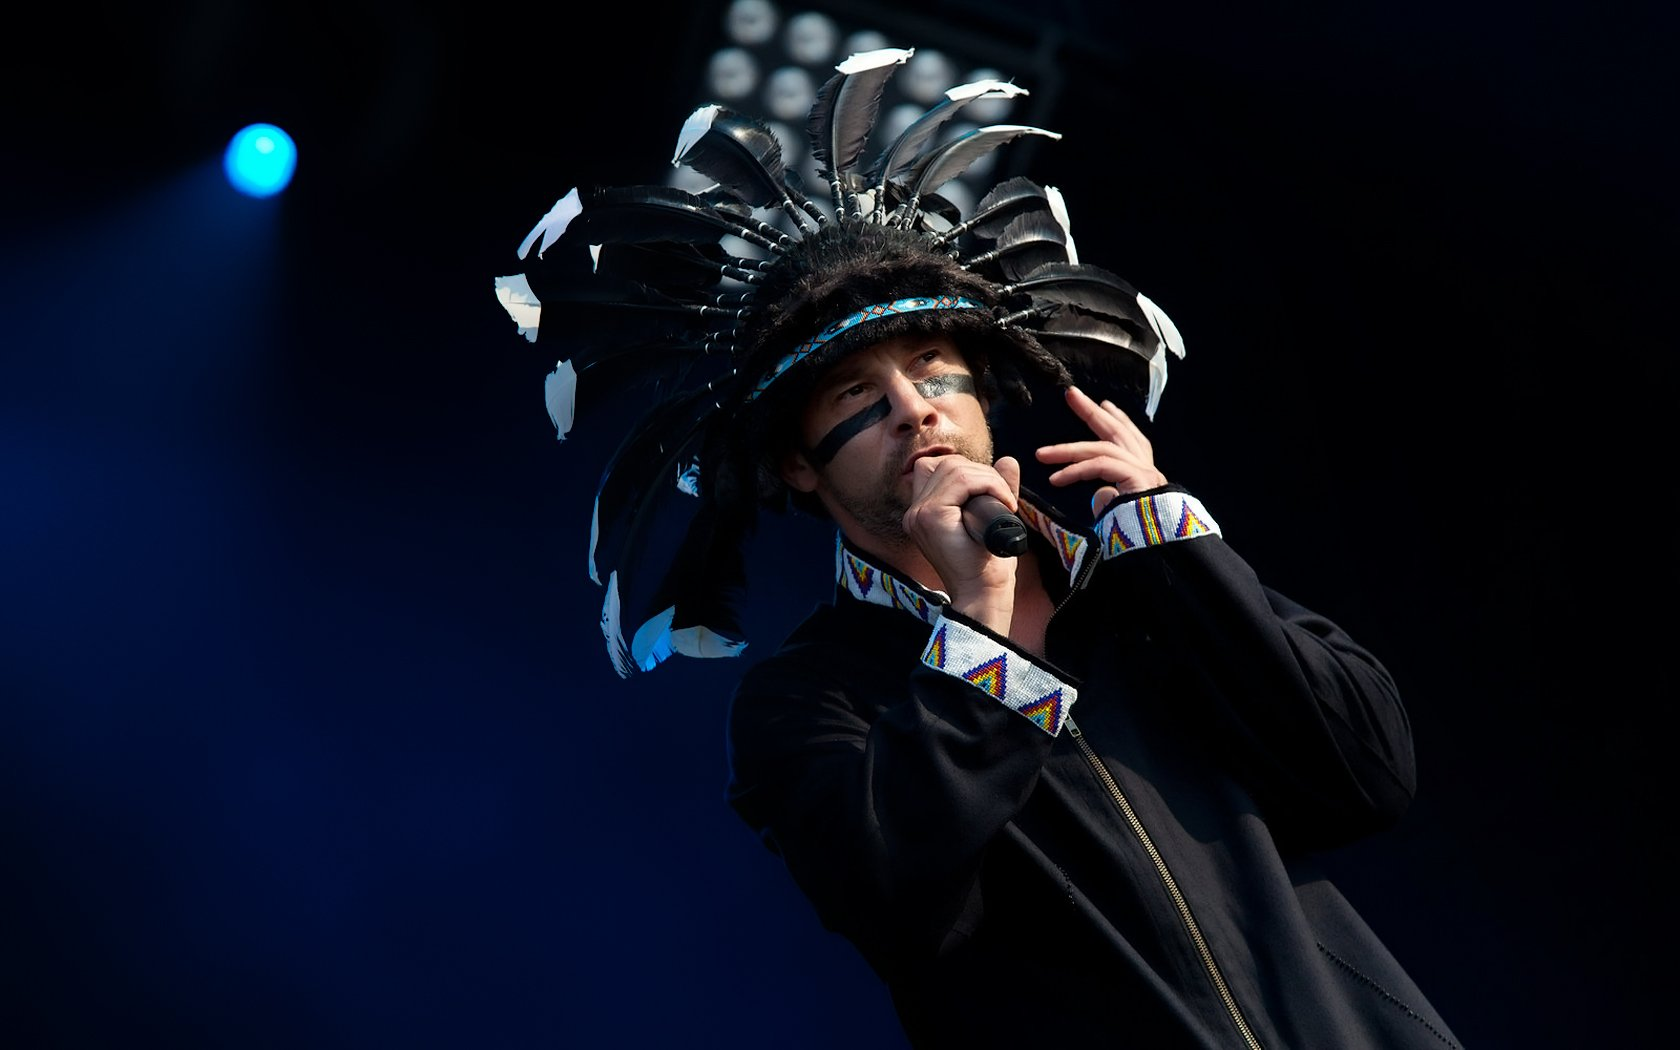 Jamiroquai images Jay HD wallpaper and background photos 33380241 1680x1050